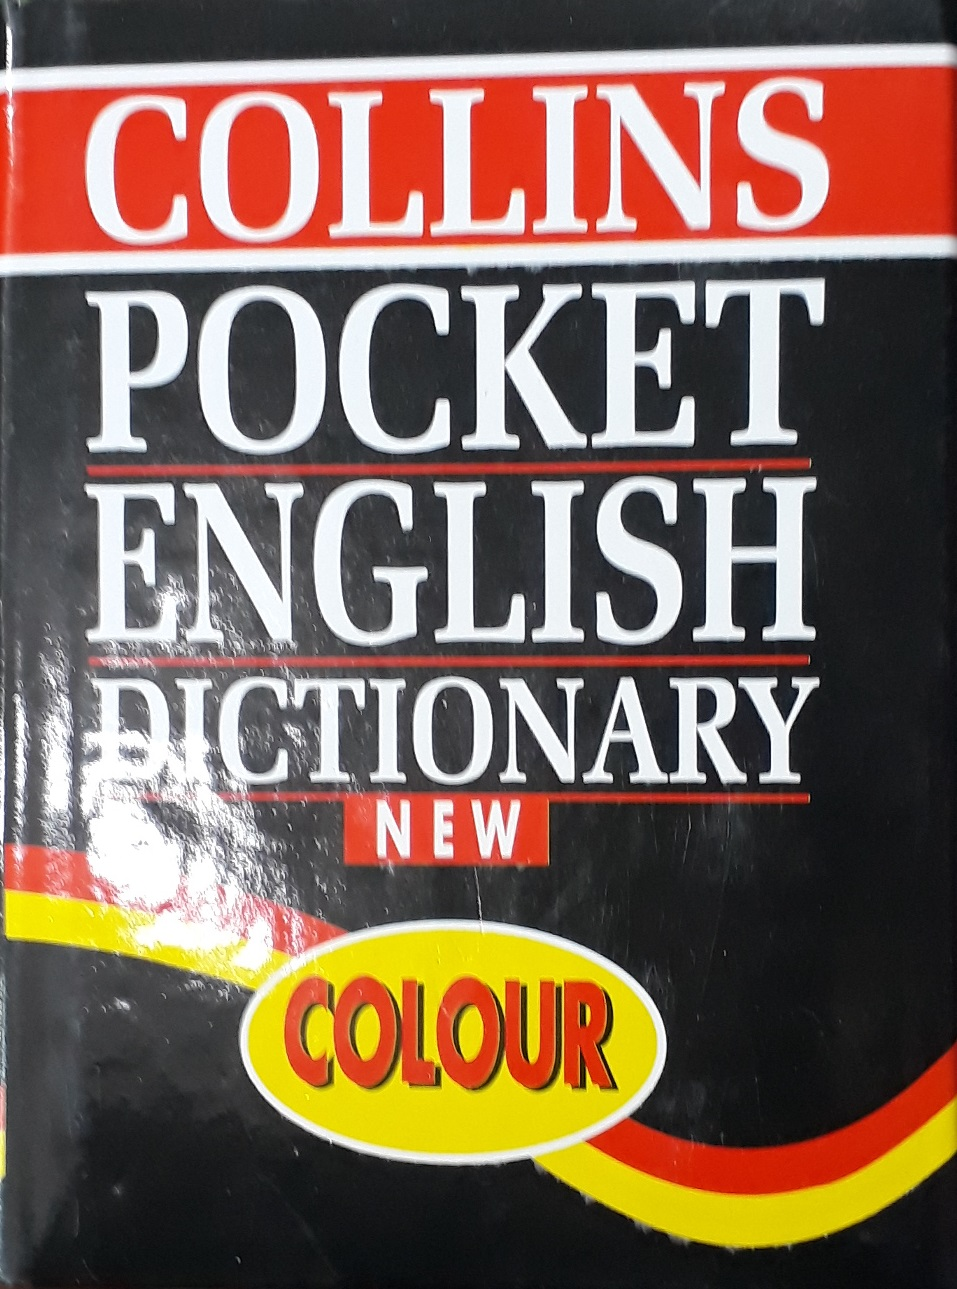 COLLINS POCKET ENGLISH DICTIONARY